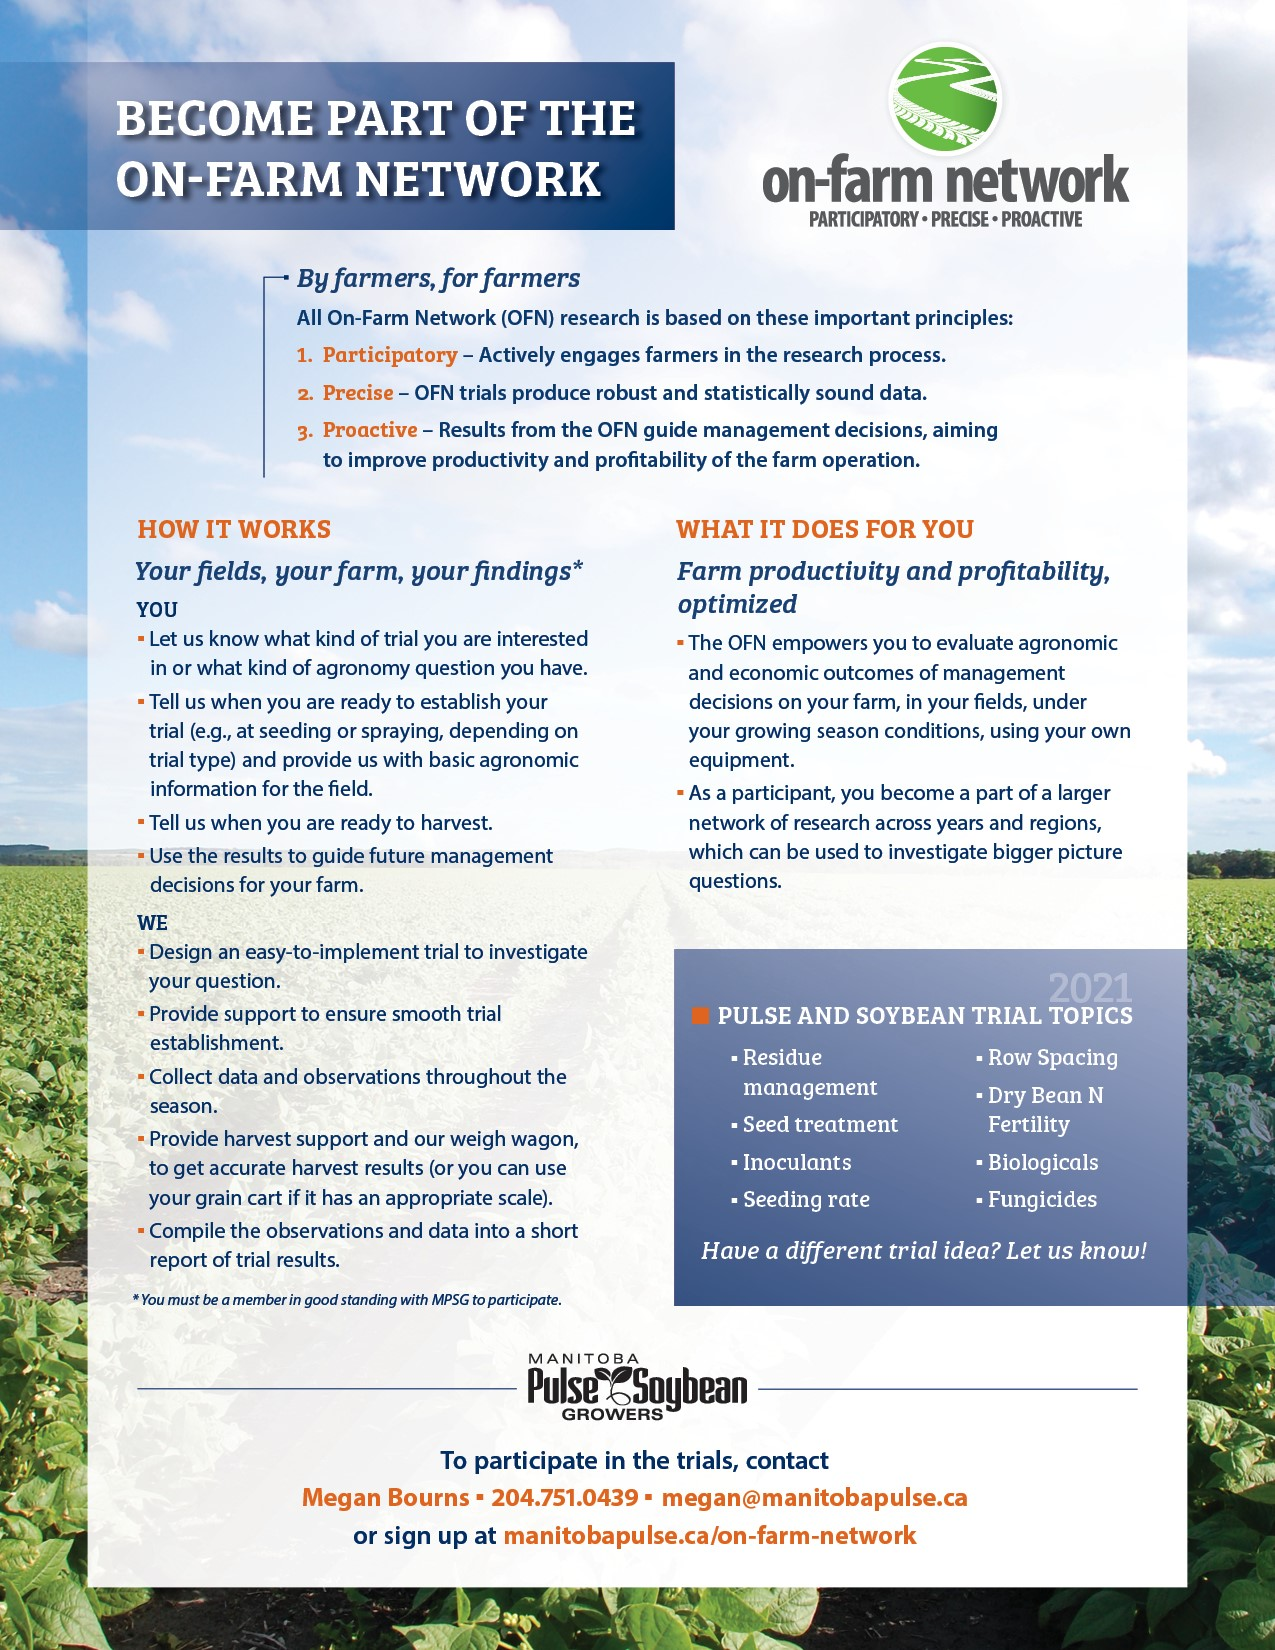 2021 On-Farm Network Call to Participate